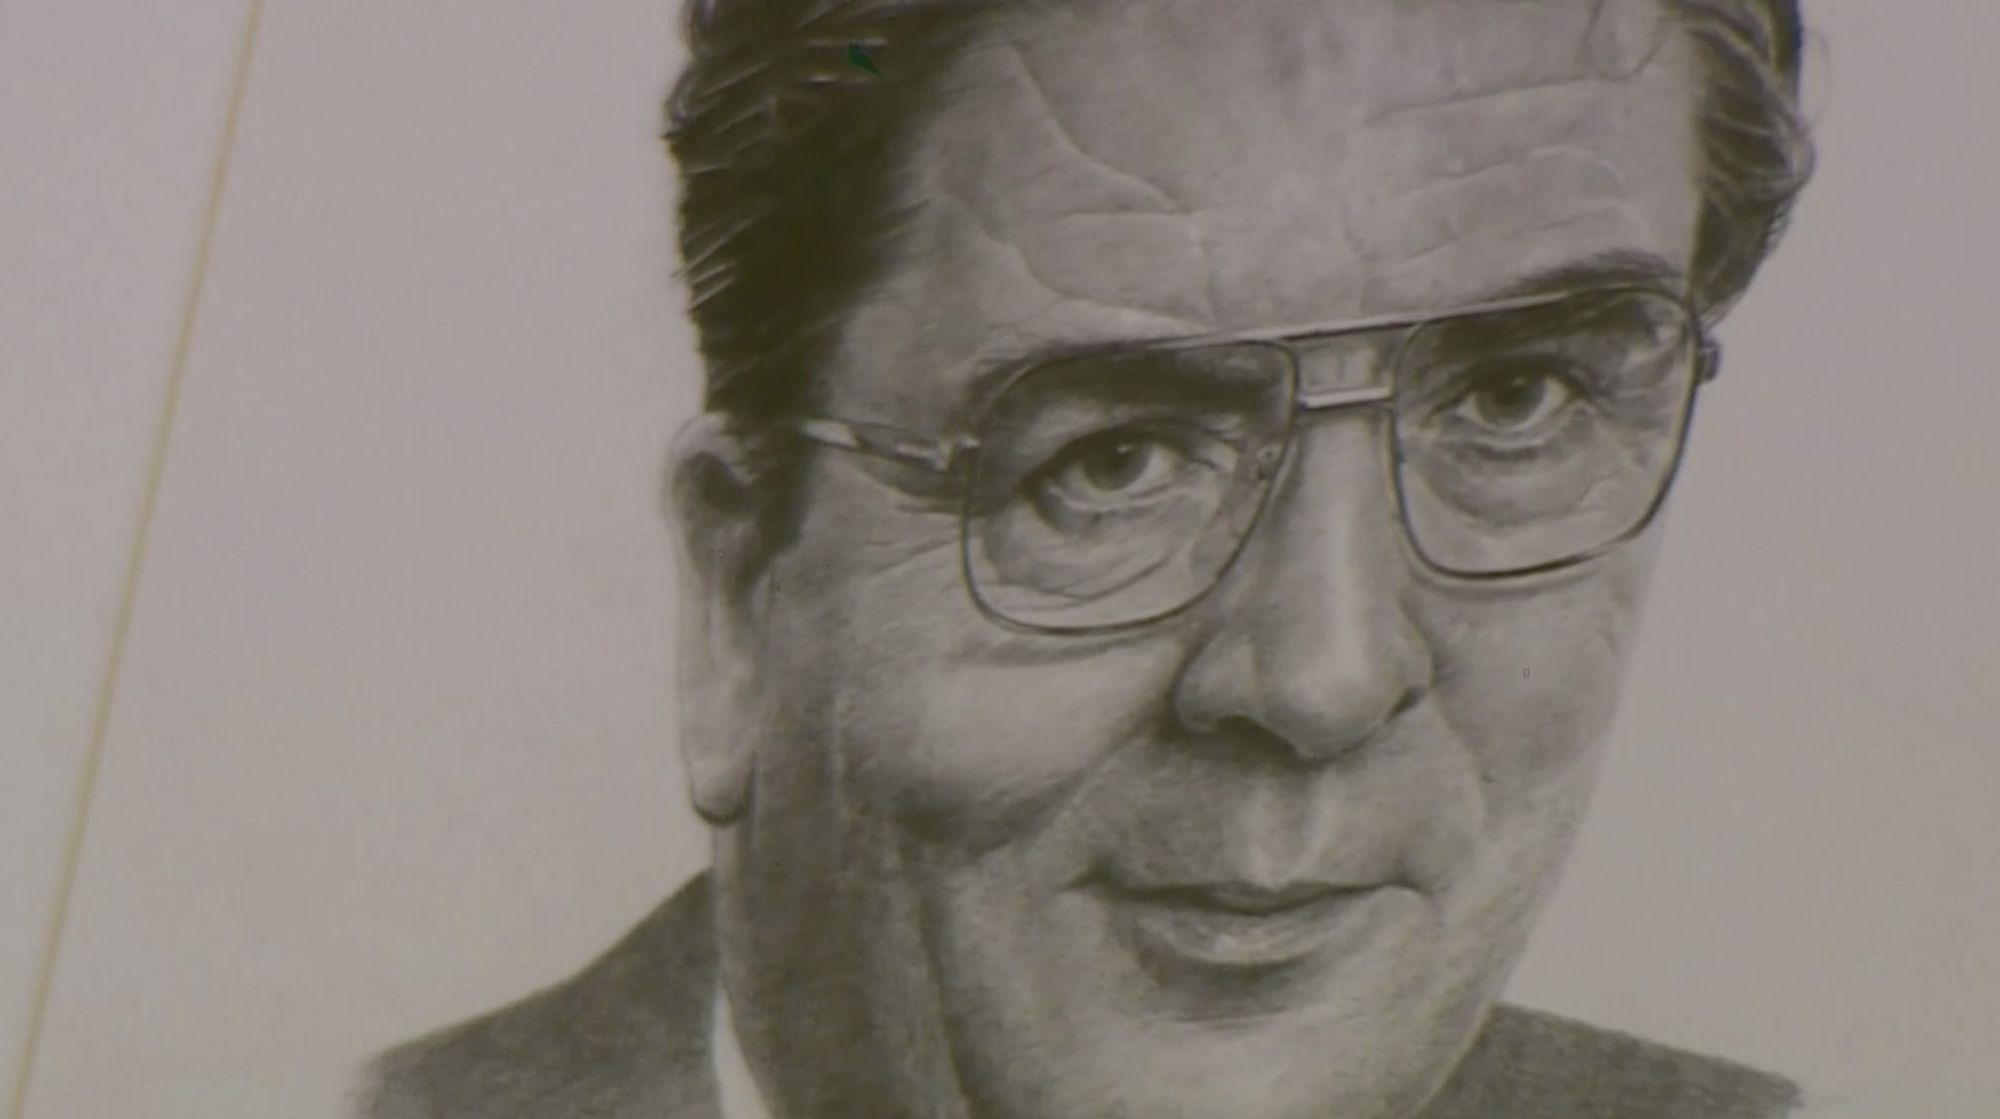 Nobel Peace Prize winner John Hume laid to rest in Derry - channel 4